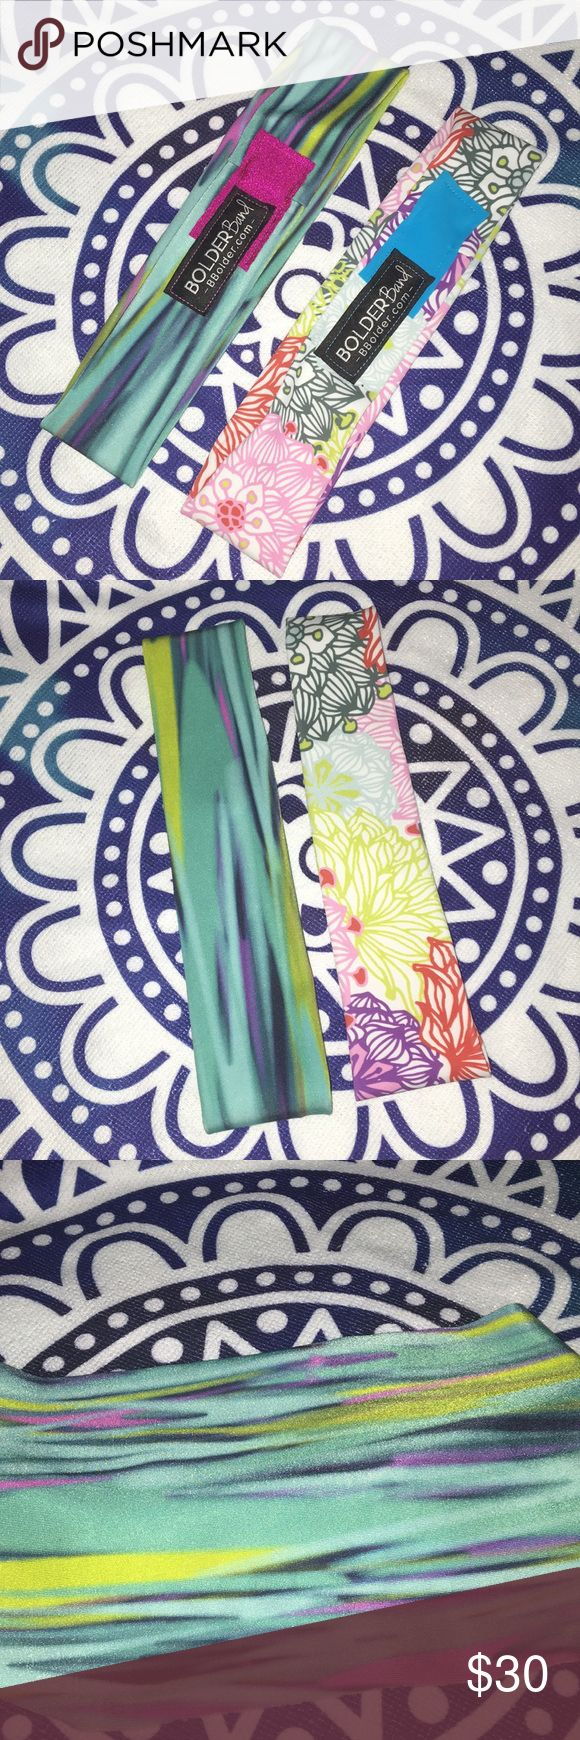 "Bolder Band Headband Set Set of two Bolder Band headbands.   Bolder Bands are size regular (fits 21"" to 22.5"") Beautiful multi color and floral headbands.   Comfy, non slip headband that wicks away sweat. Headband is expandable and can be worn thin or wide across the forehead. Bolder Band Accessories Hair Accessories"